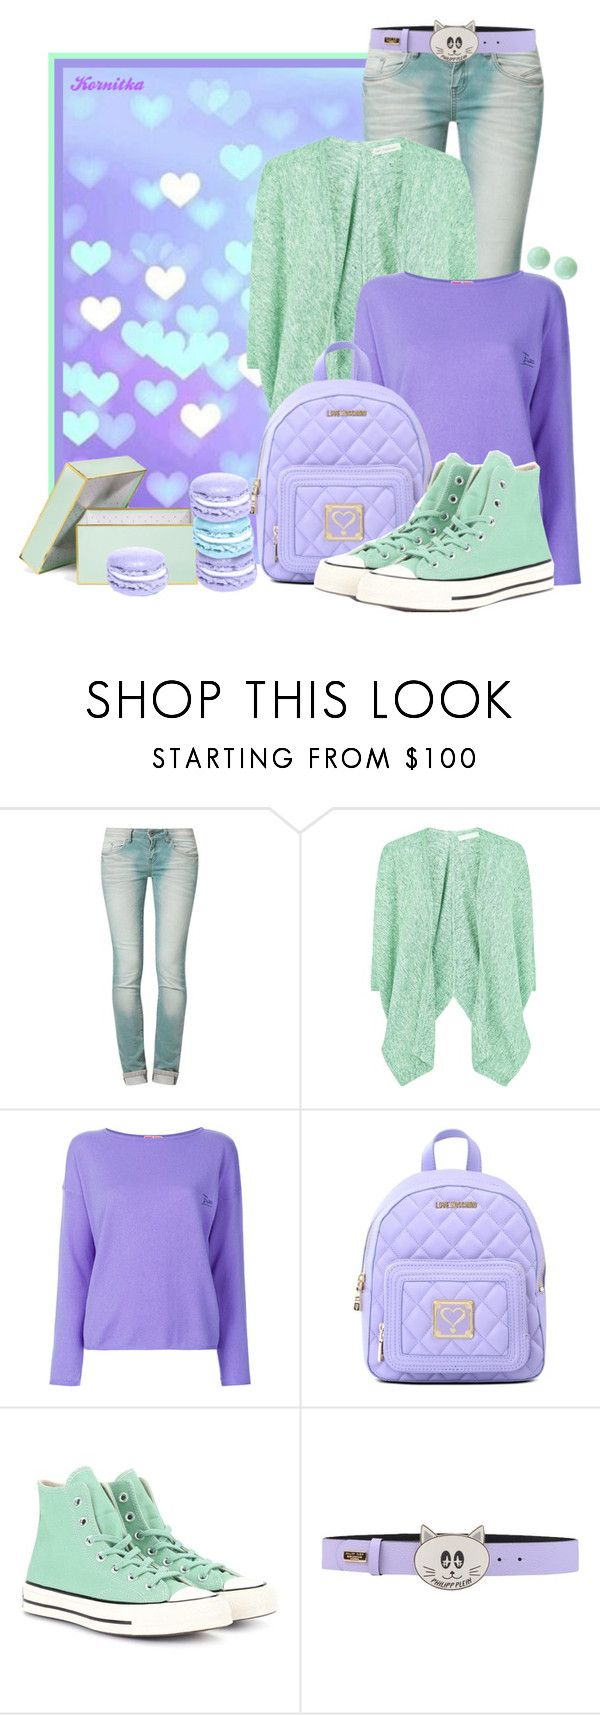 """nr 2036 / Candy Colors"" by kornitka ❤ liked on Polyvore featuring One Green Elephant, Fenn Wright Manson, Emilio Pucci, Love Moschino, Converse, Philipp Plein, Effy Jewelry, casual, comfy and candy"